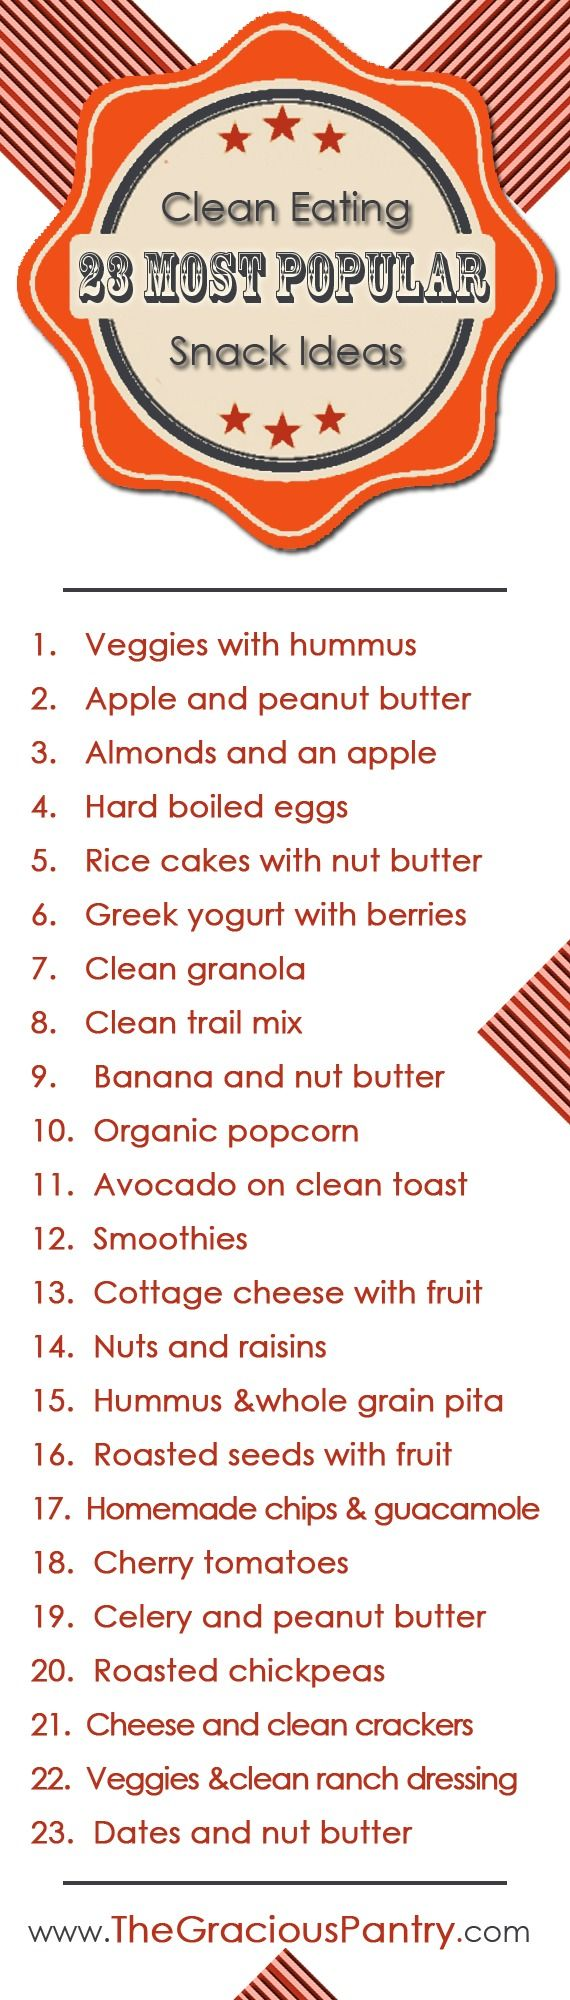 Here are some great snack options that you can add to your kids or your lunch box! #cleaneating #lunchbox #ideas